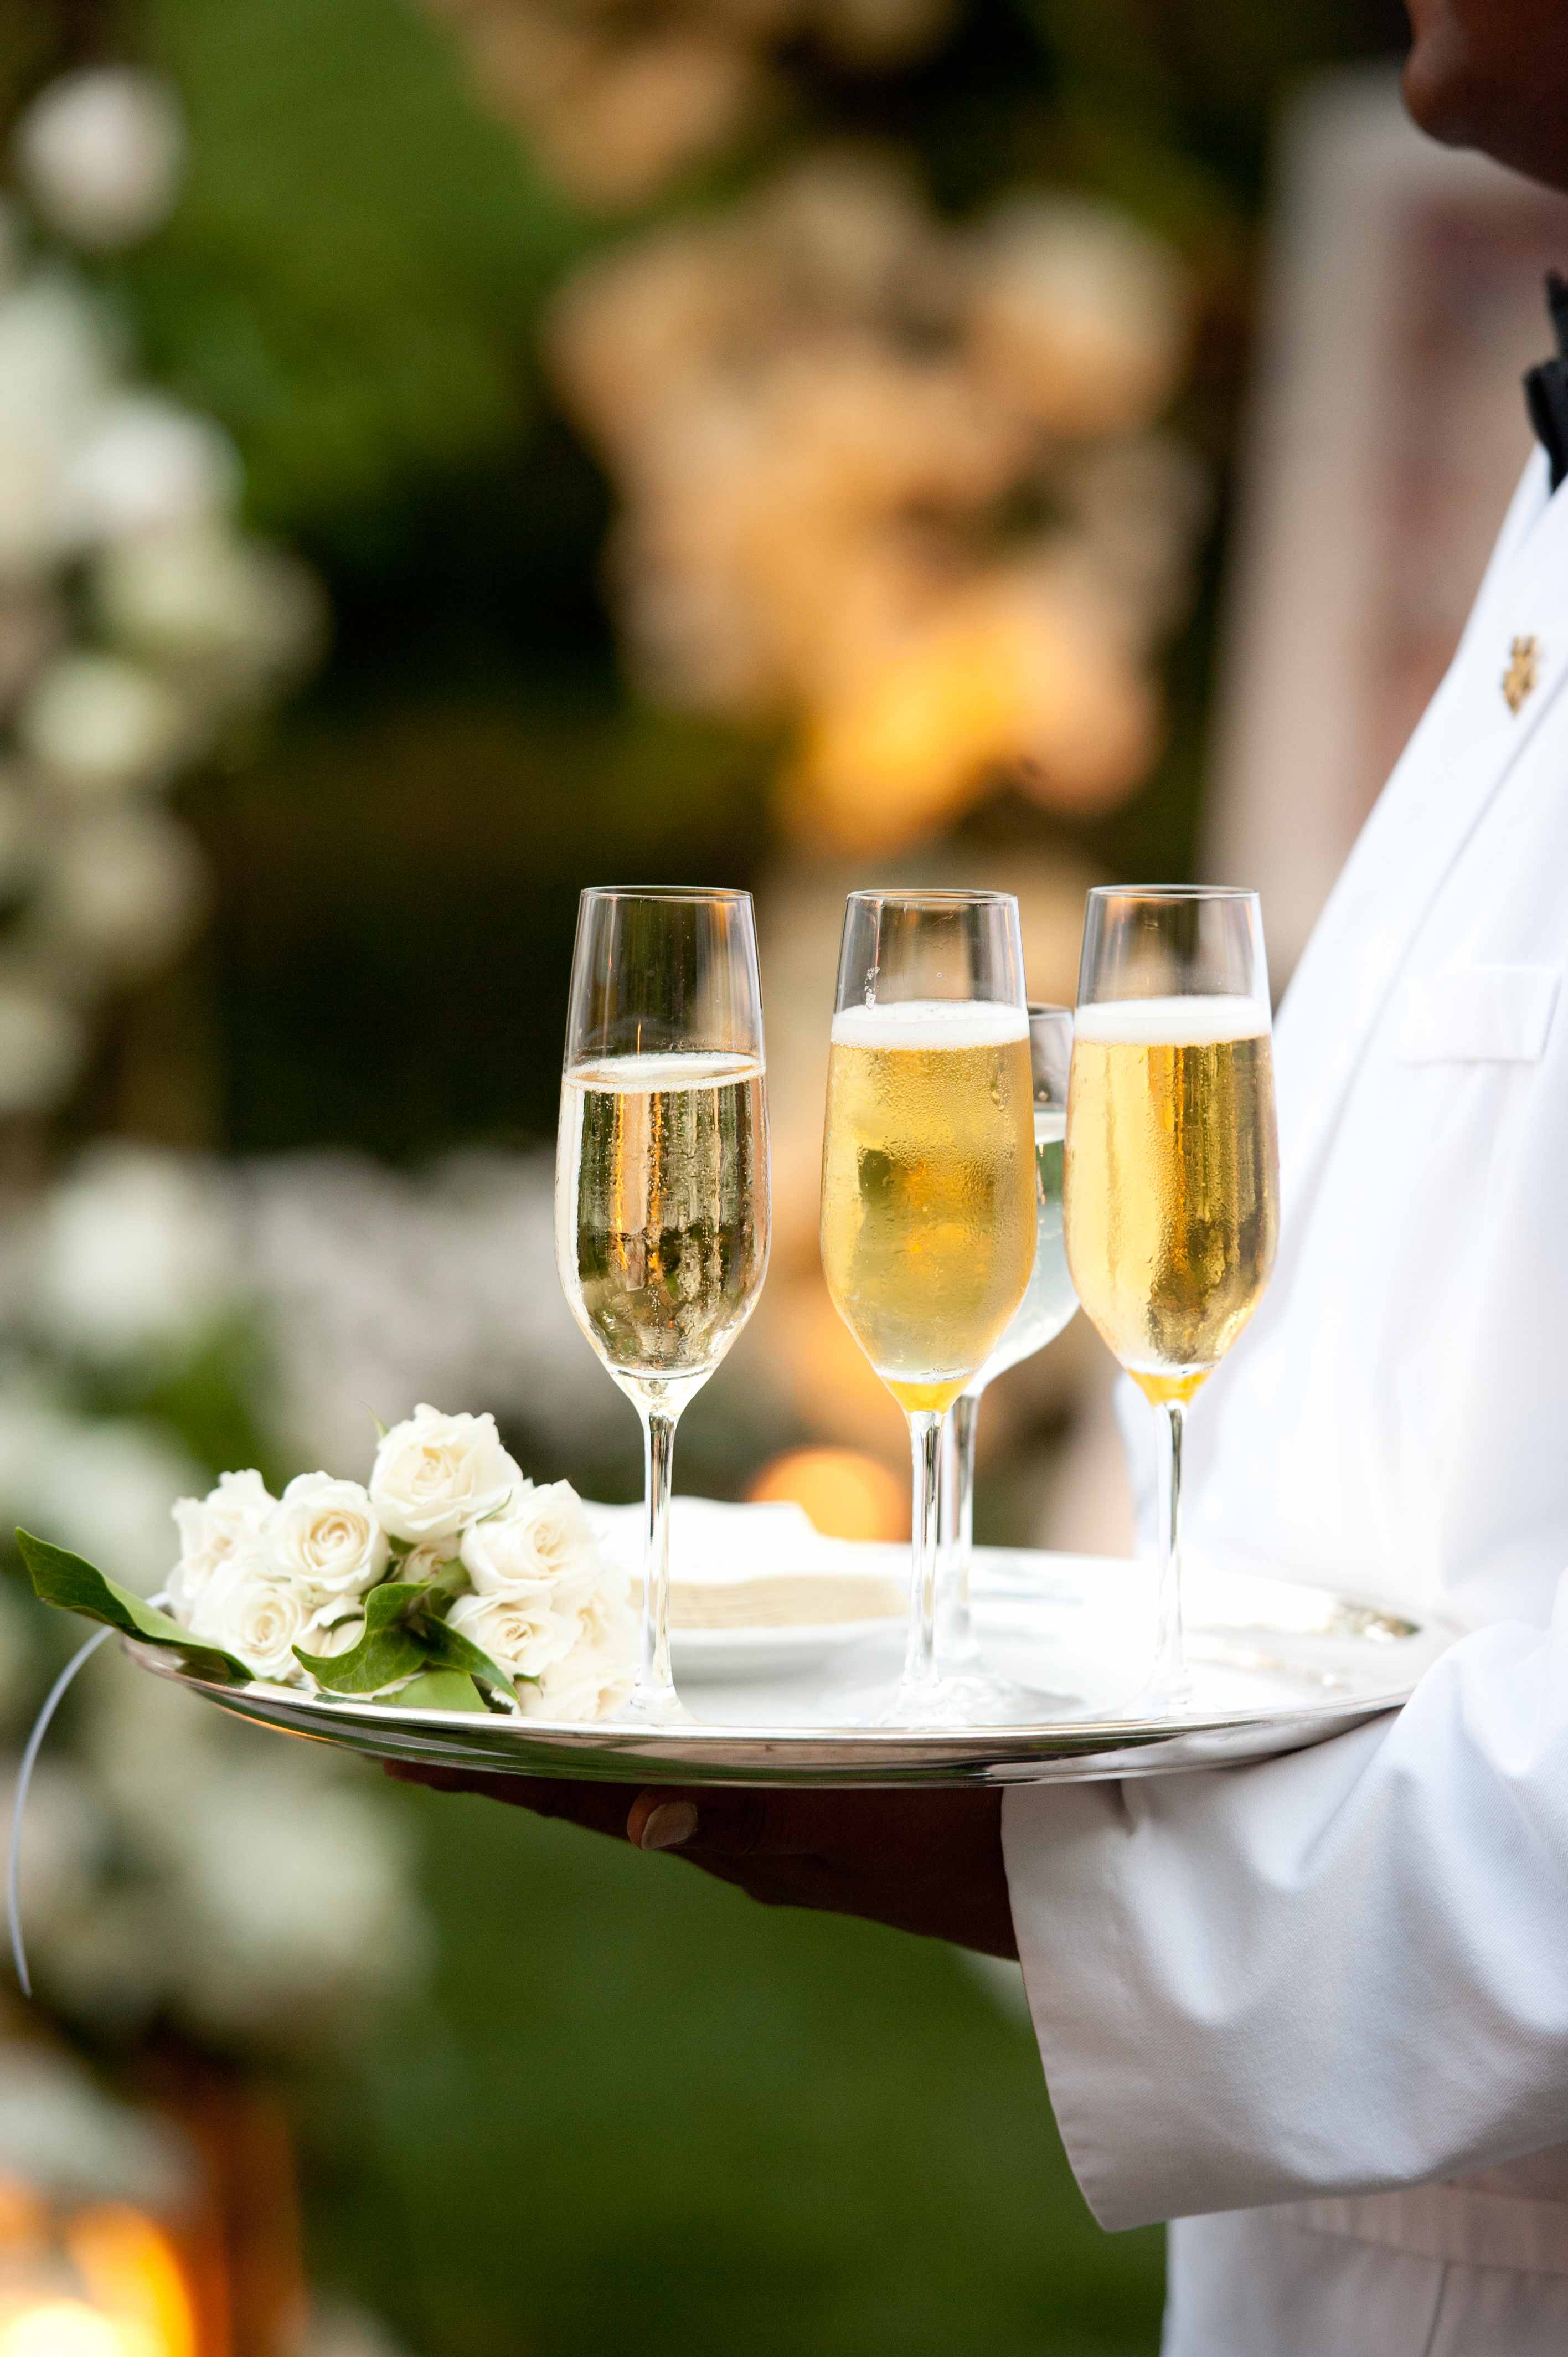 Champagne on silver platter at wedding ceremony pre wedding drinks